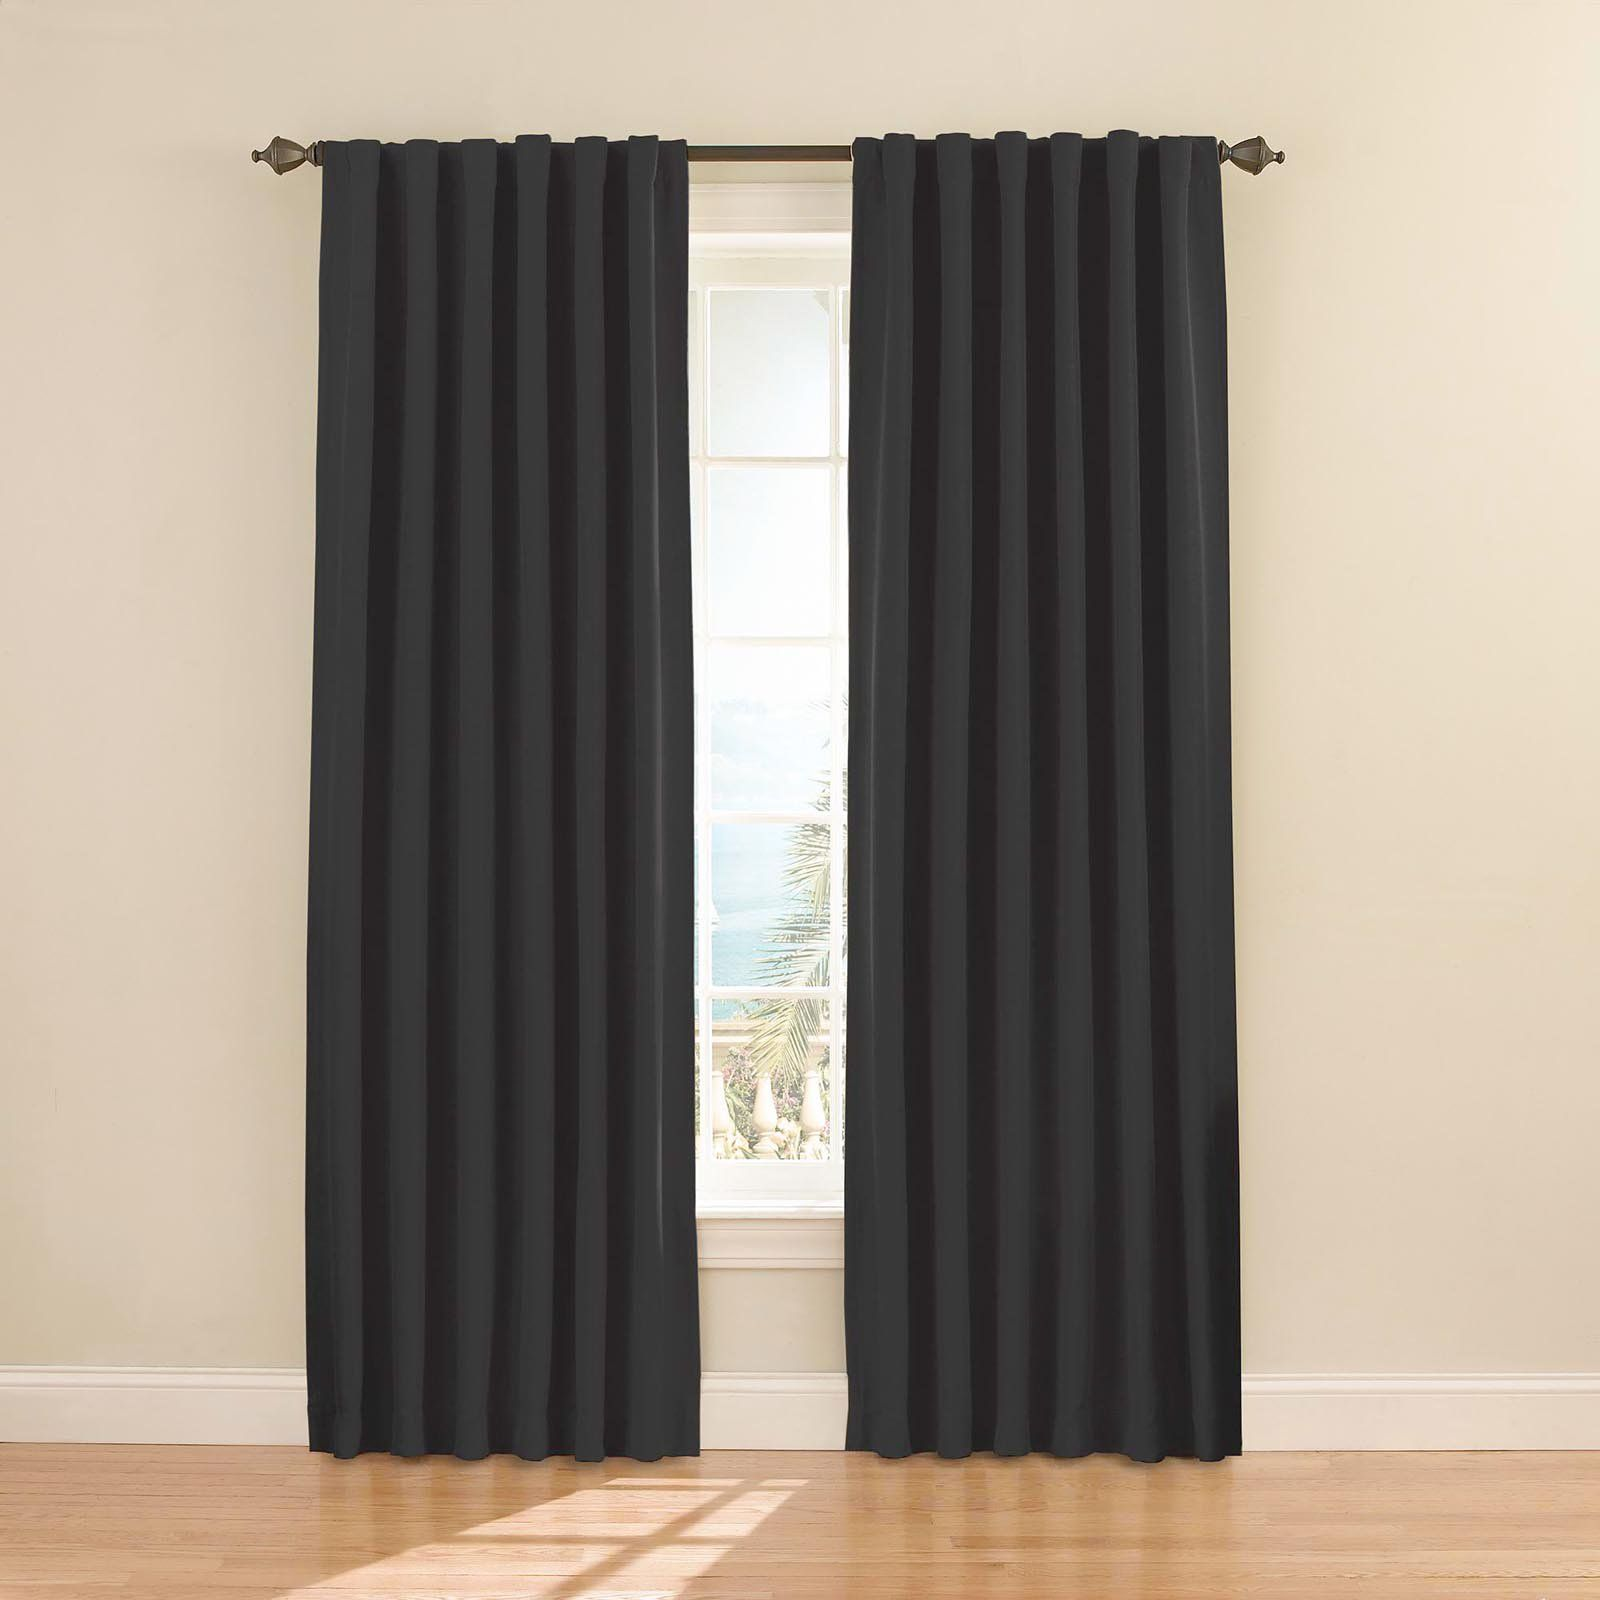 Eclipse Fresno Blackout Window Curtain Panel 2020 Panel Curtains Eclipse Curtains Window Curtains